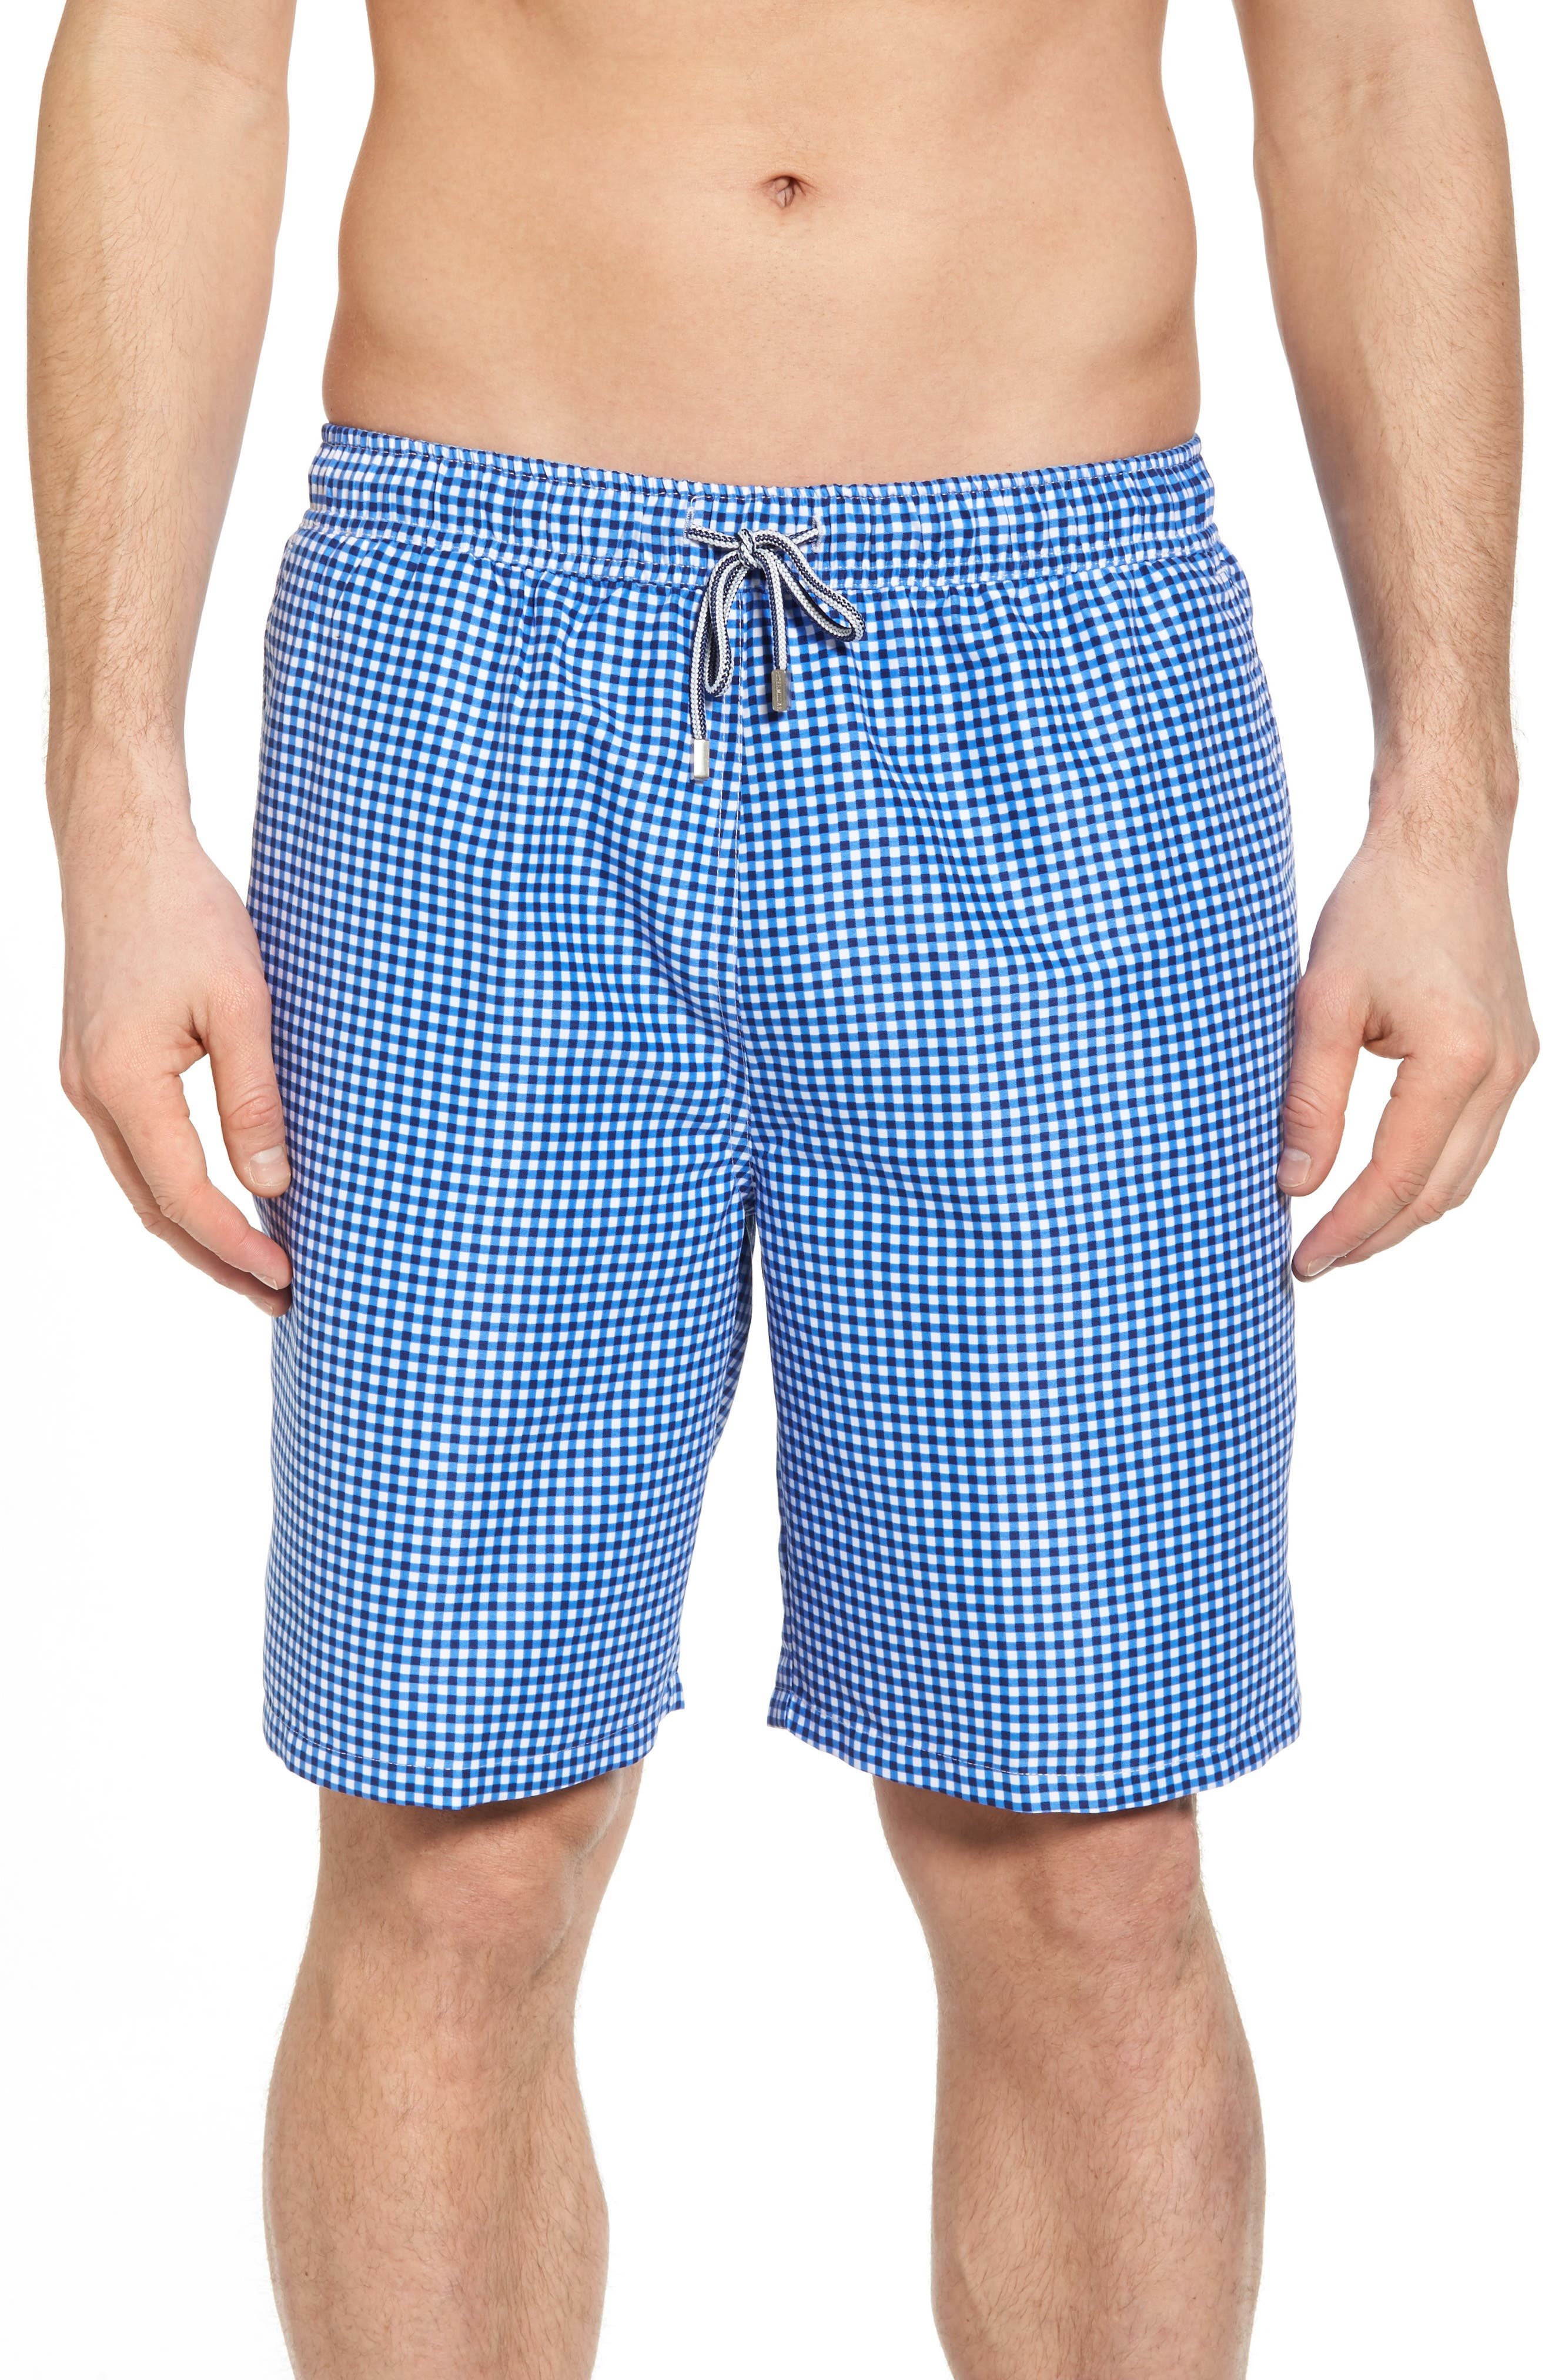 Gingham Style Swim Trunks, Main, color, ATLANTIC BLUE